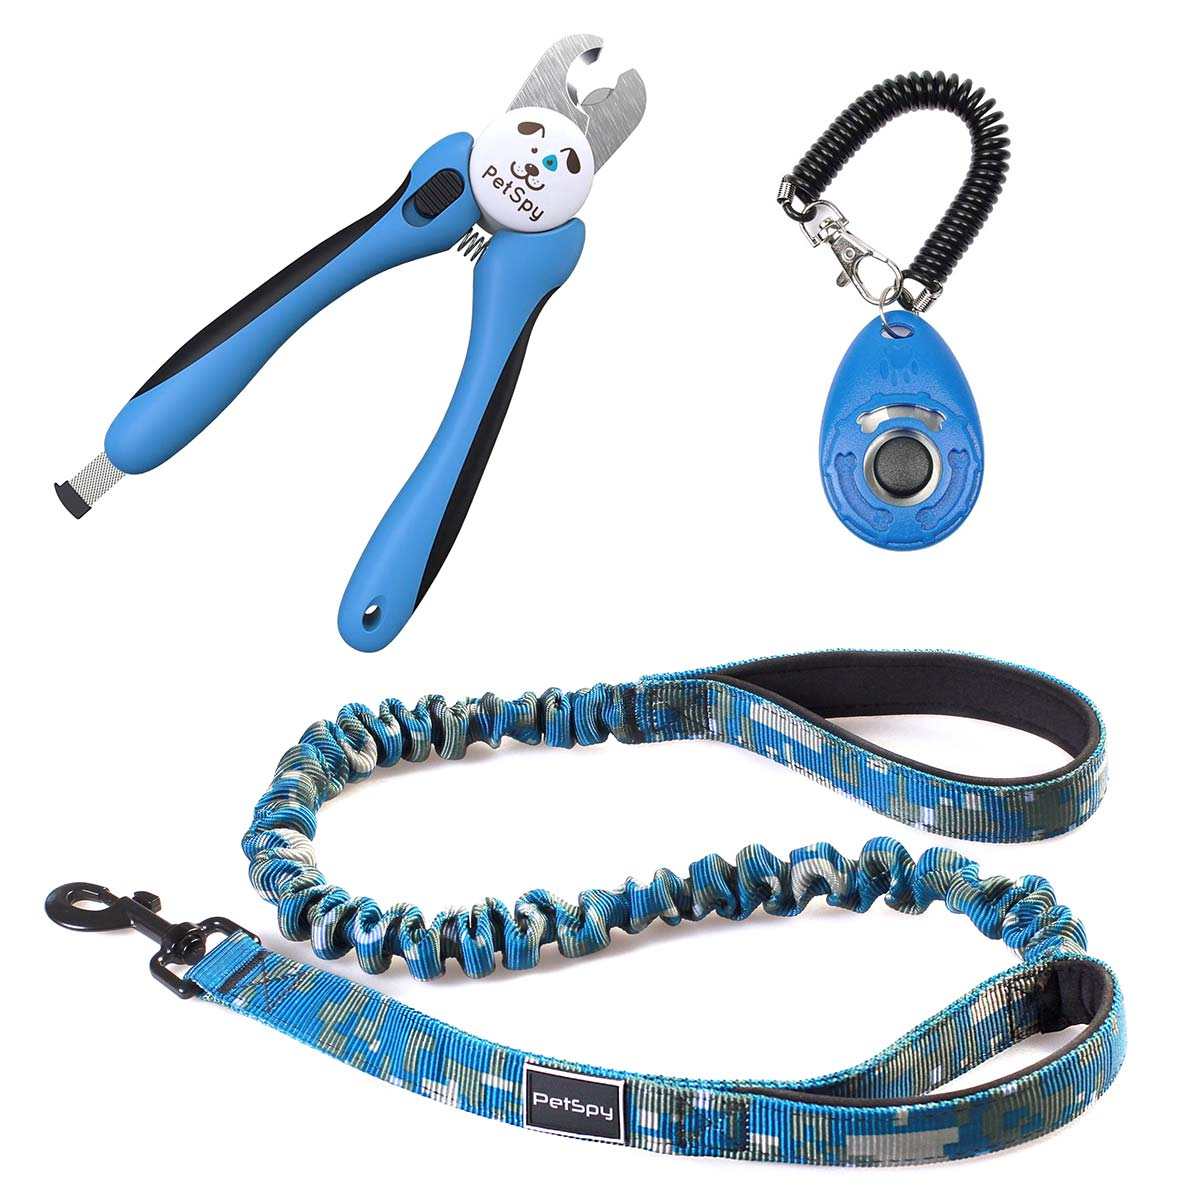 PetSpy Train-Walk-Groom Bundle with Dog Clicker, Bungee Leash, and Nail Clipper